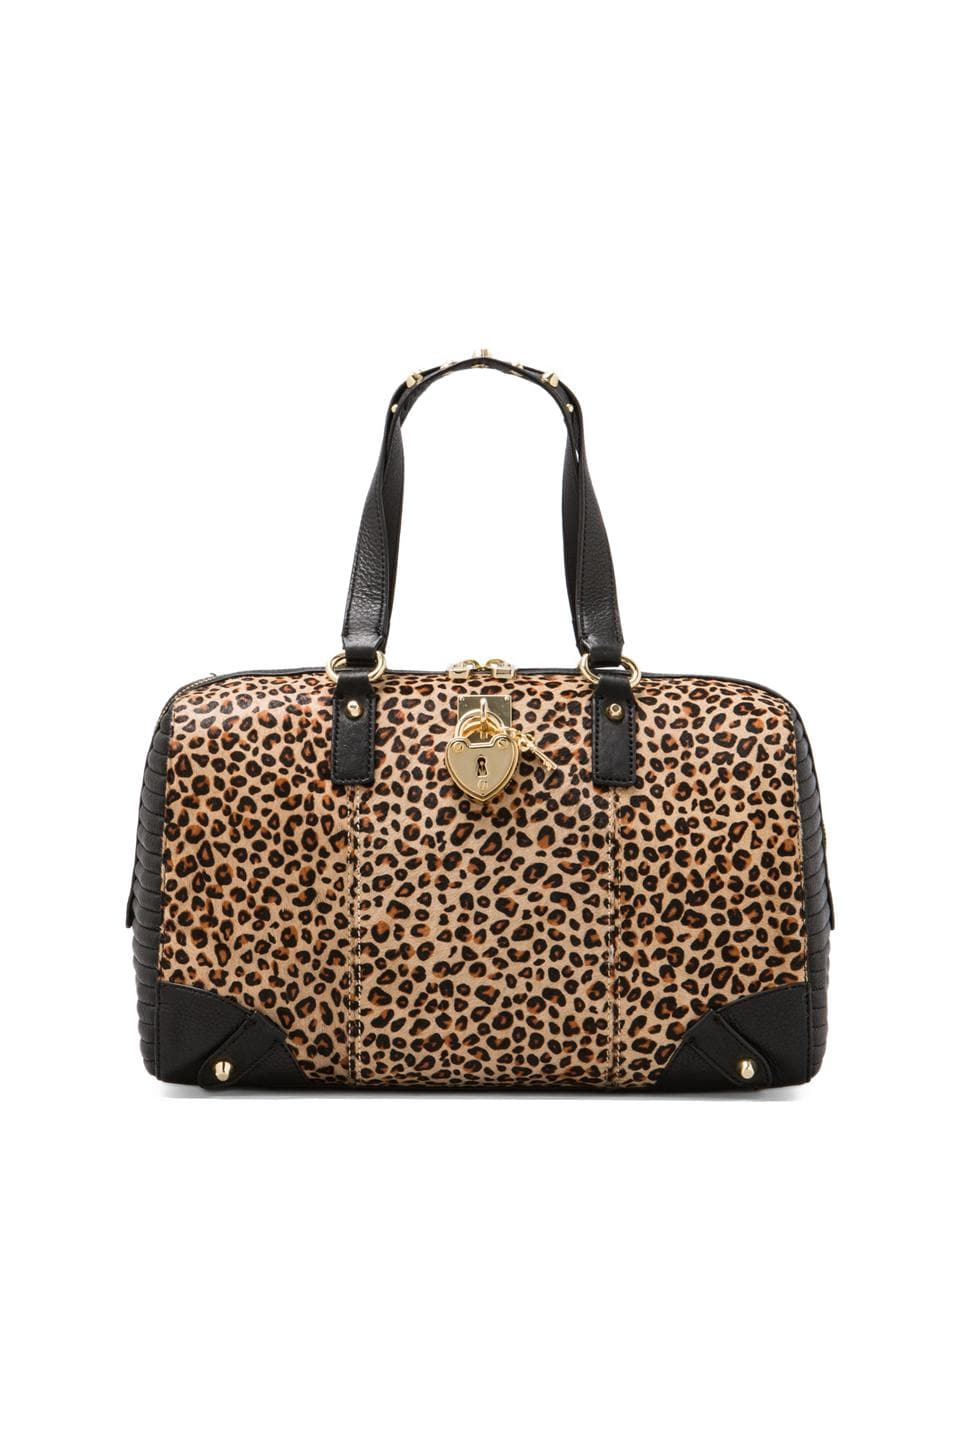 Juicy Couture Robertson Haircalf Steffy Tote in Natural Leopard